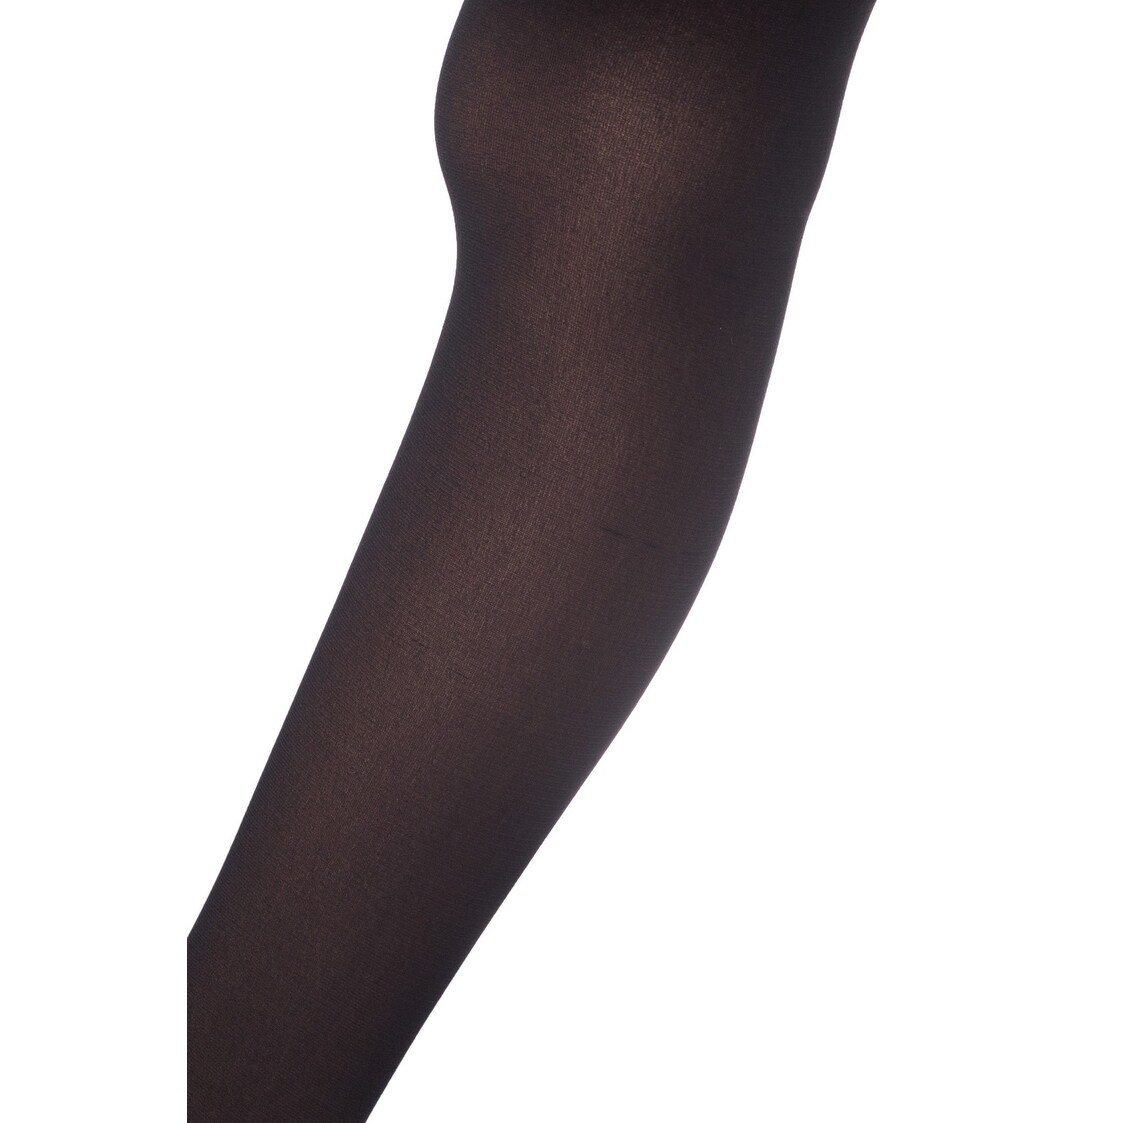 8ad1da748e5d8 Shop Girl's Opaque Dance footed tights (2pack) - Free Shipping On Orders  Over $45 - Overstock - 22649137